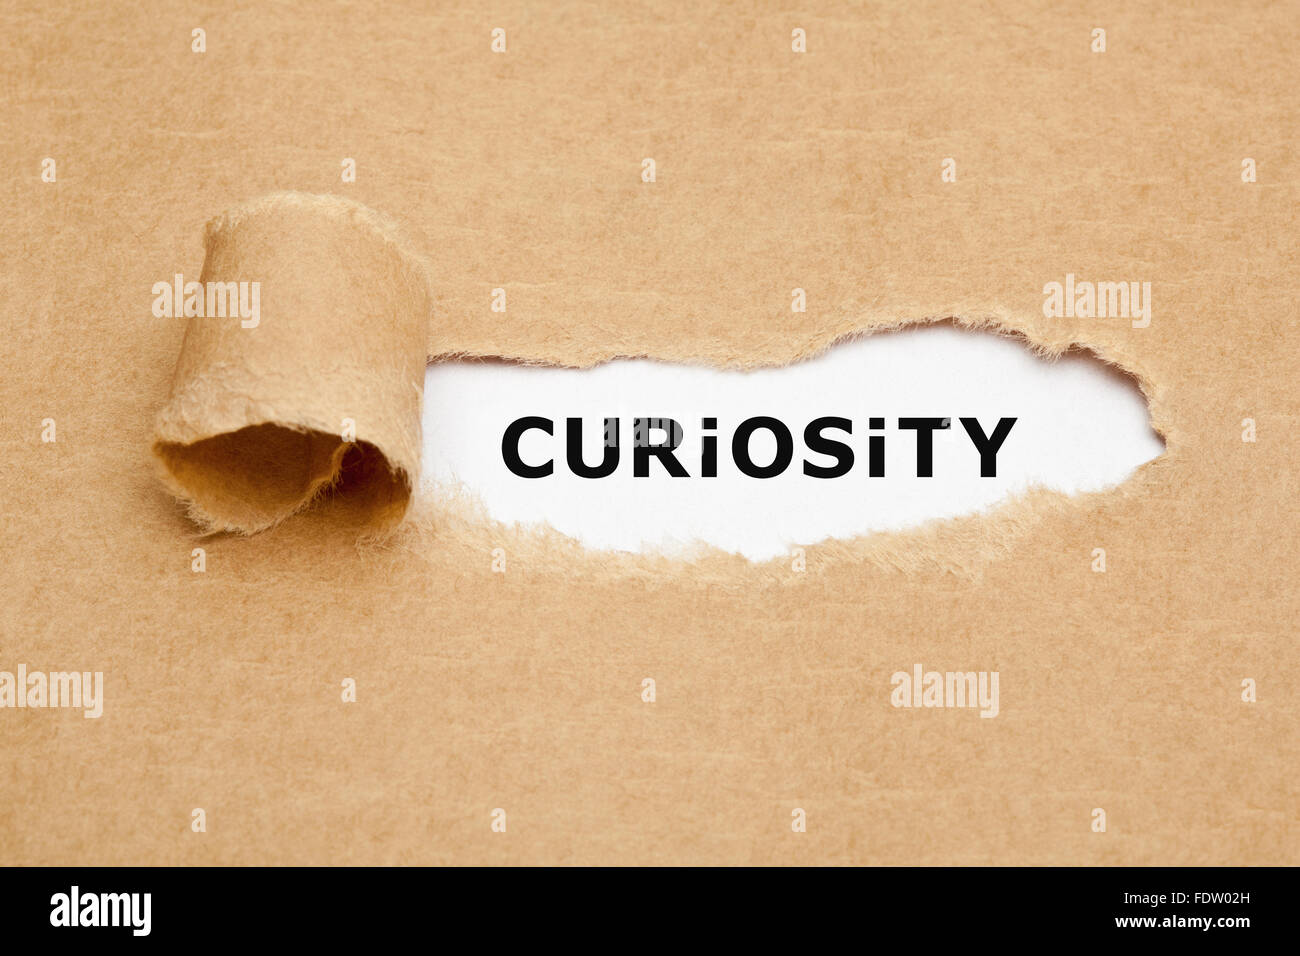 The word Curiosity appearing behind torn brown paper. Curiosity is the desire to learn or know more about something - Stock Image